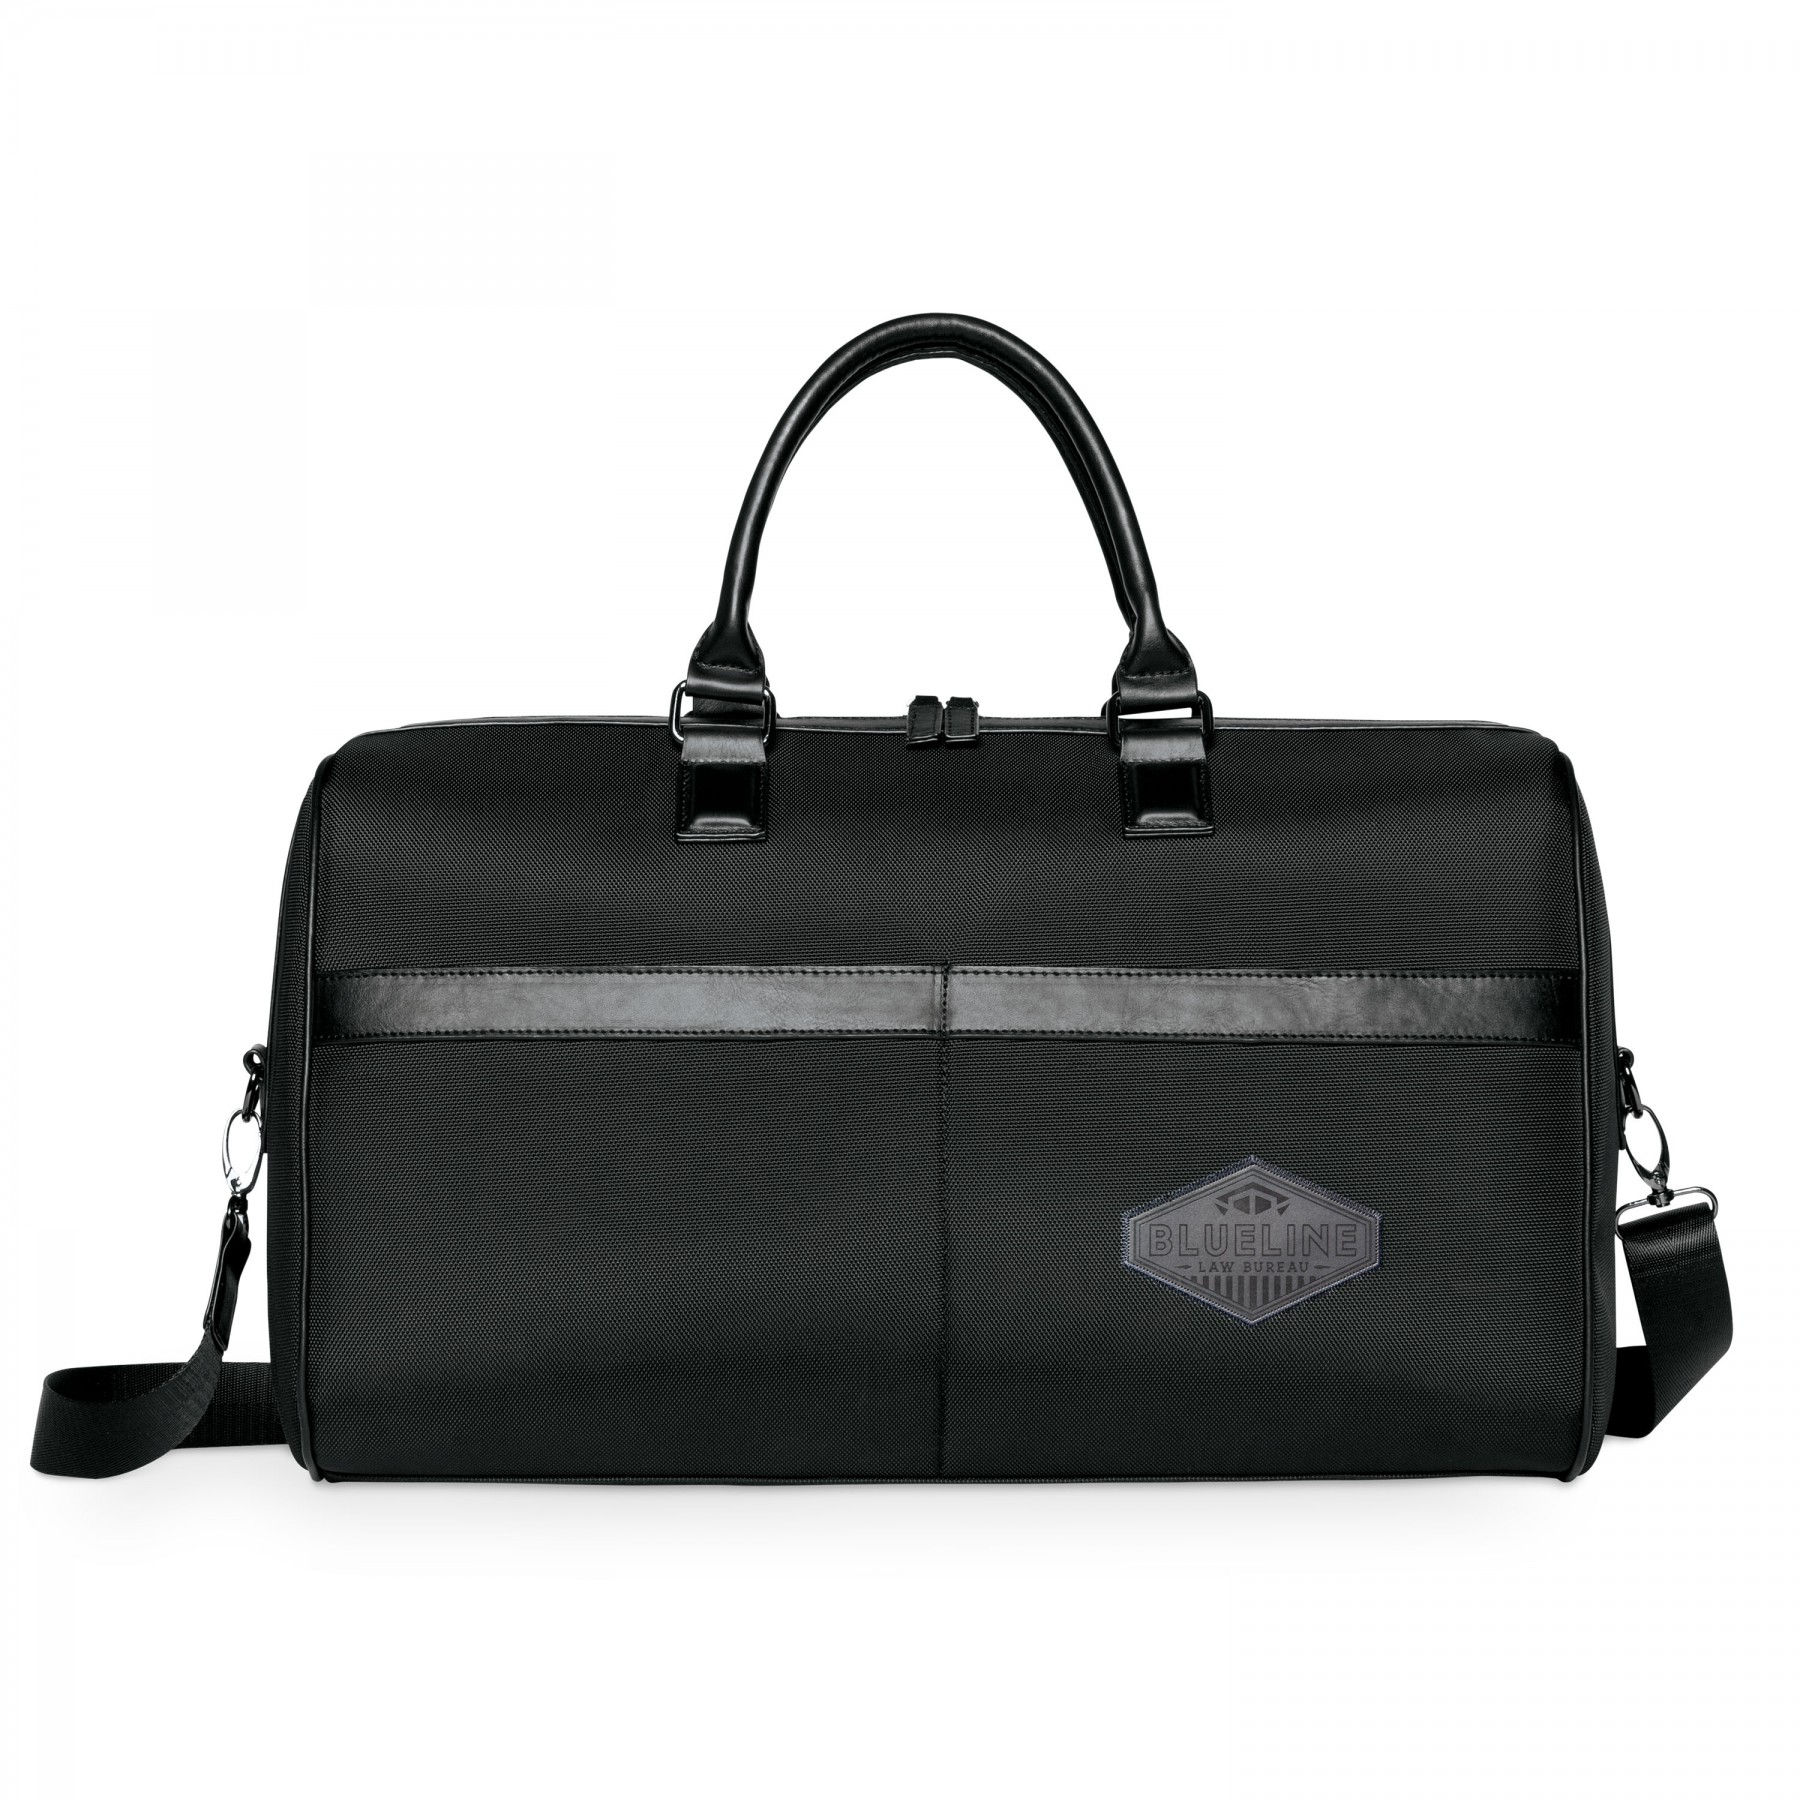 Classic Revival Duffle, BG203, Full Colour Imprint